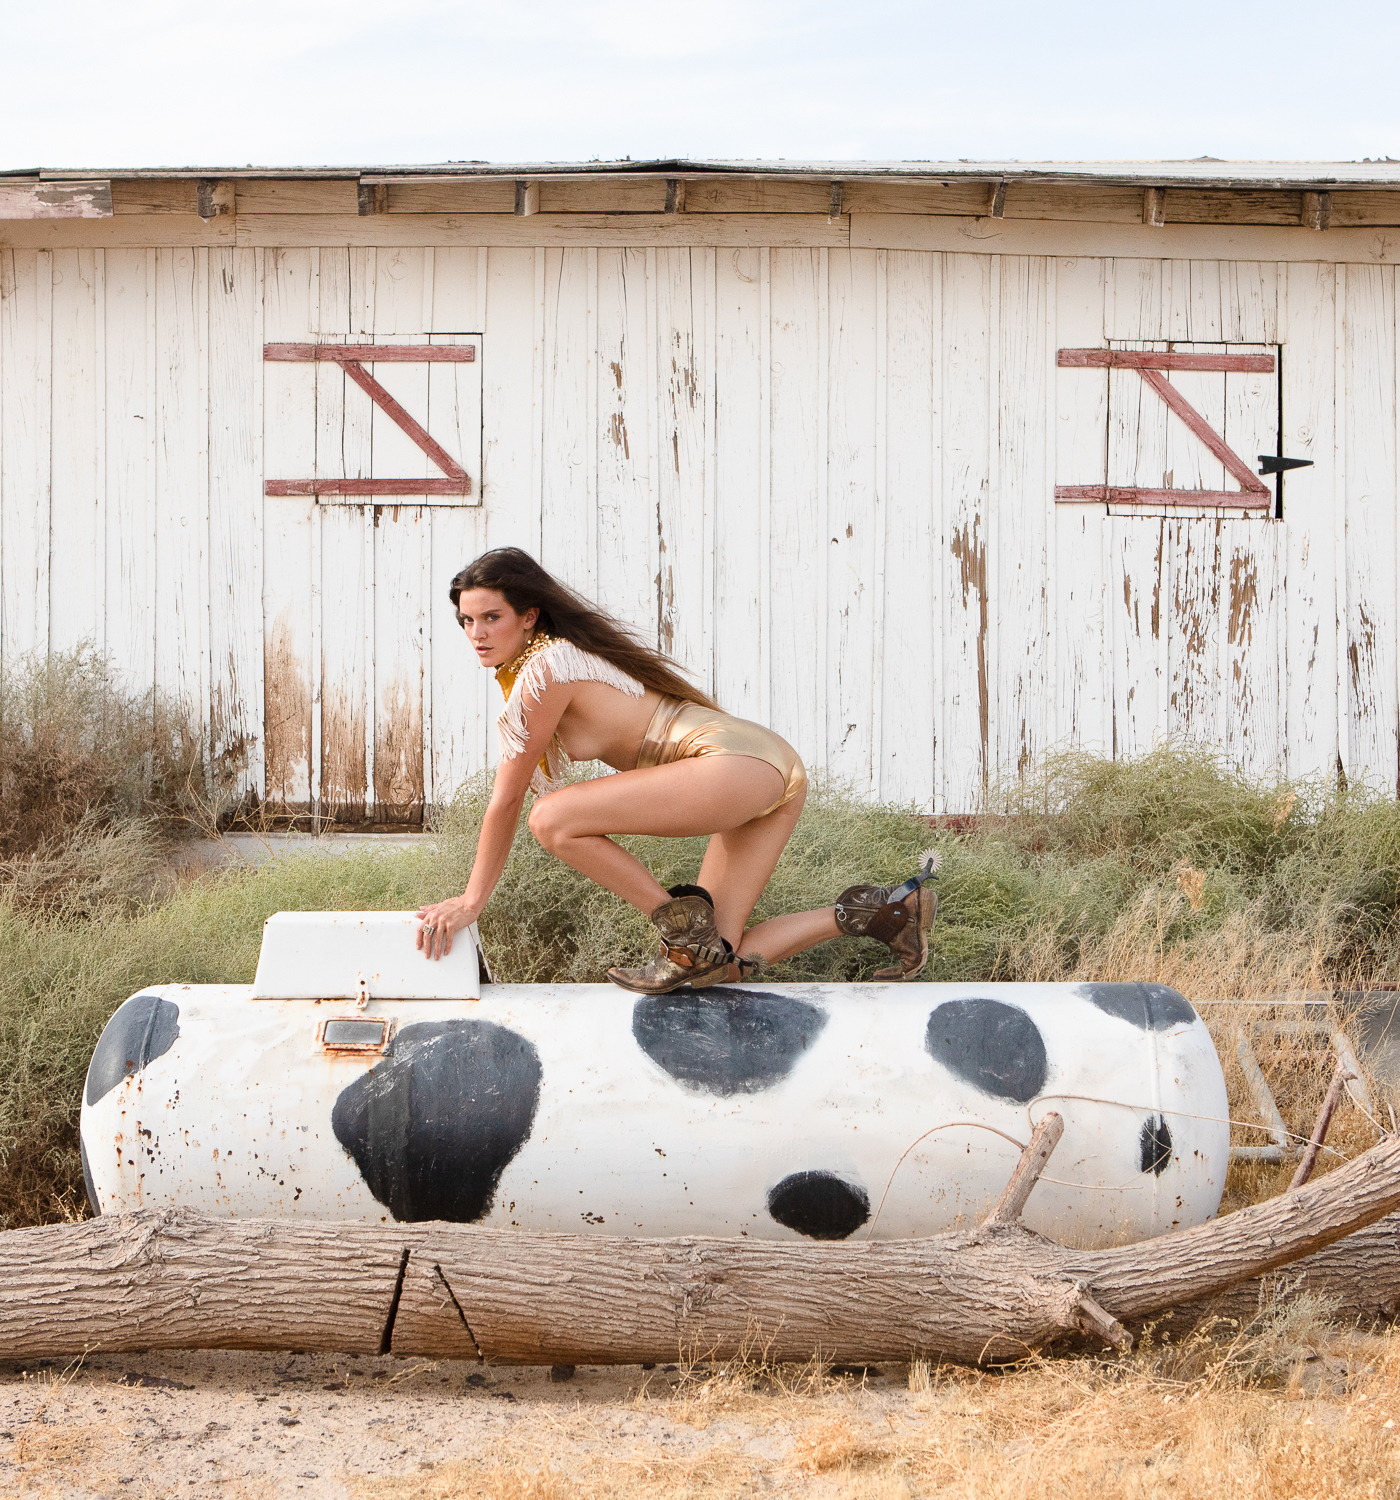 western Americana fashion photographer in the desert styled with a space cowgirl vibe